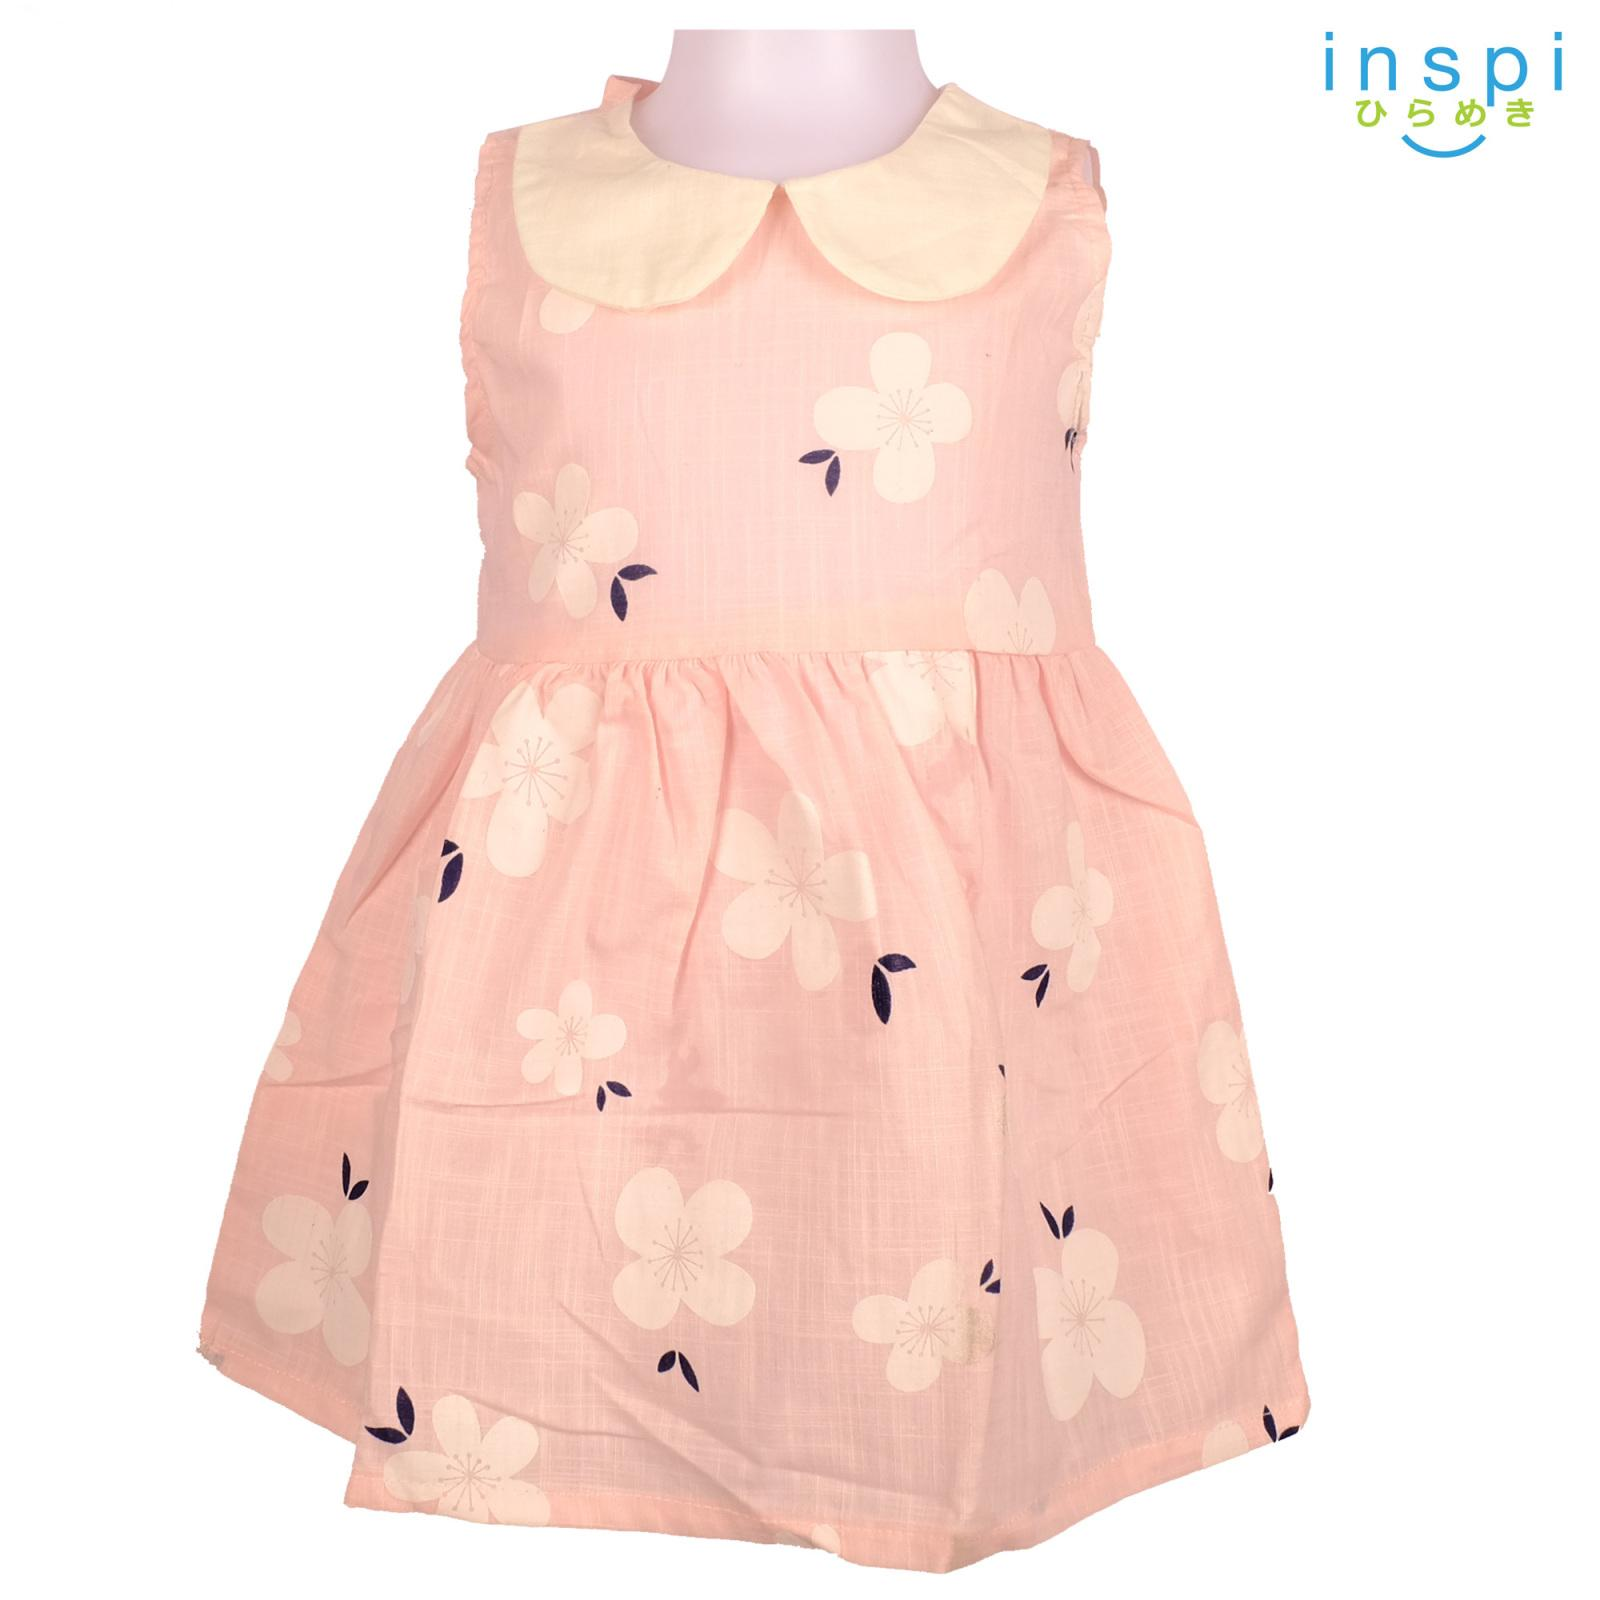 Girls Dresses for sale - Dress for Girls online brands, prices ...